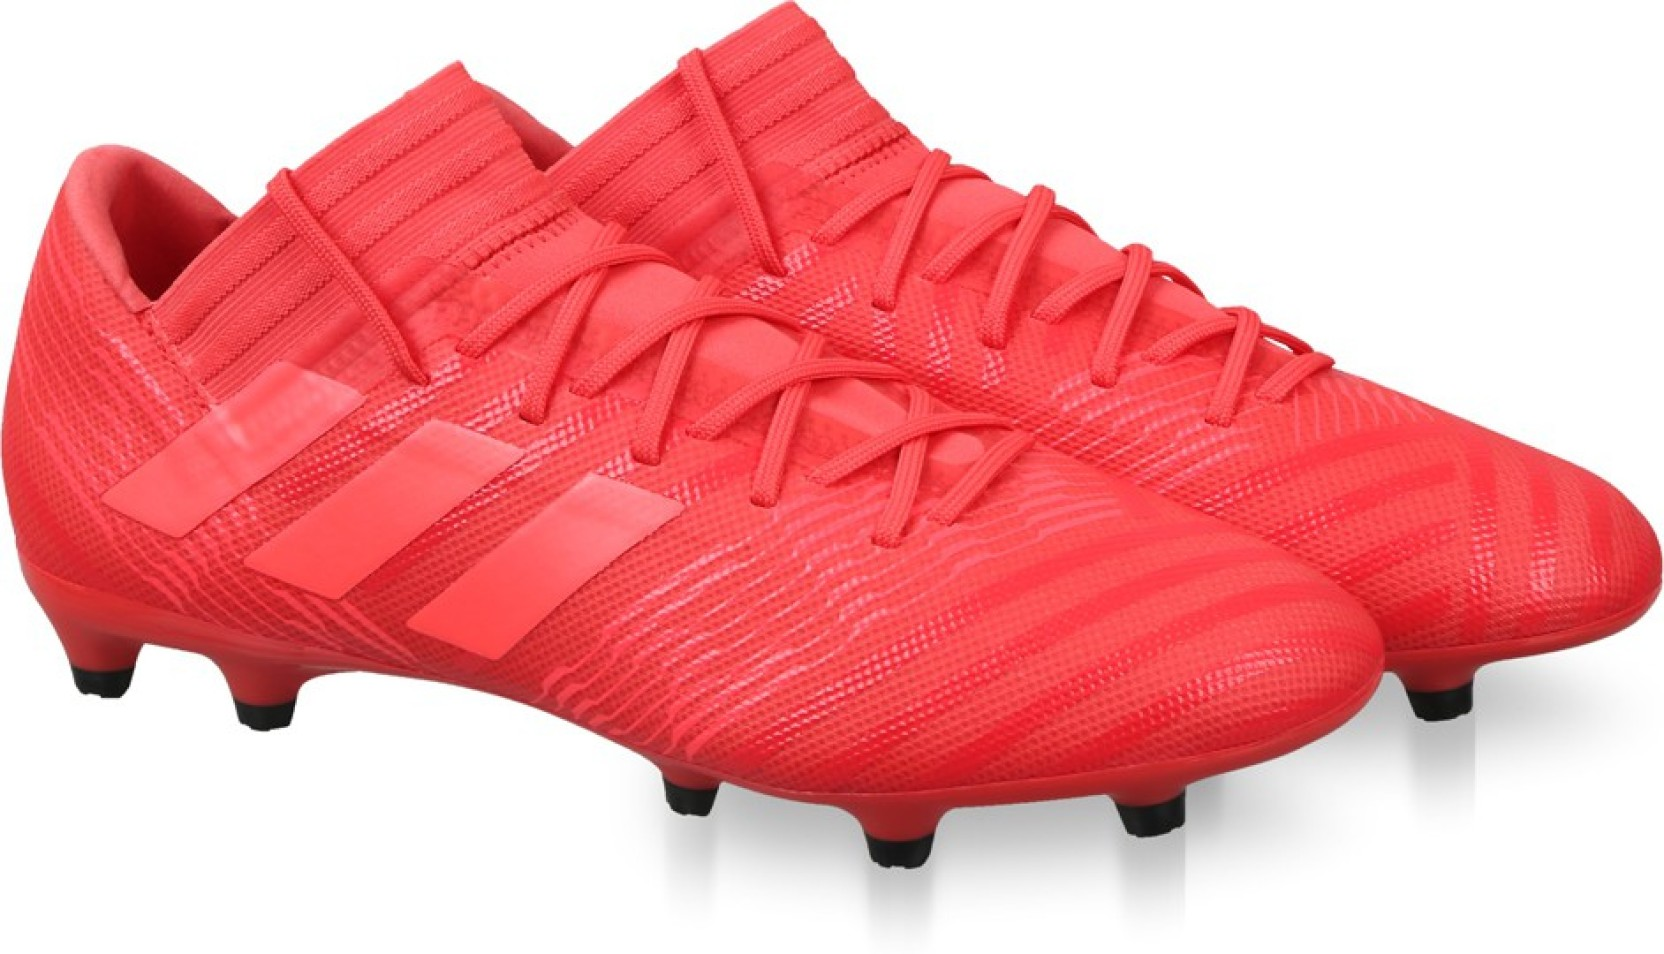 89e58d4b8183 ADIDAS NEMEZIZ 17.3 FG Football Shoes For Men - Buy REACOR REDZES ...